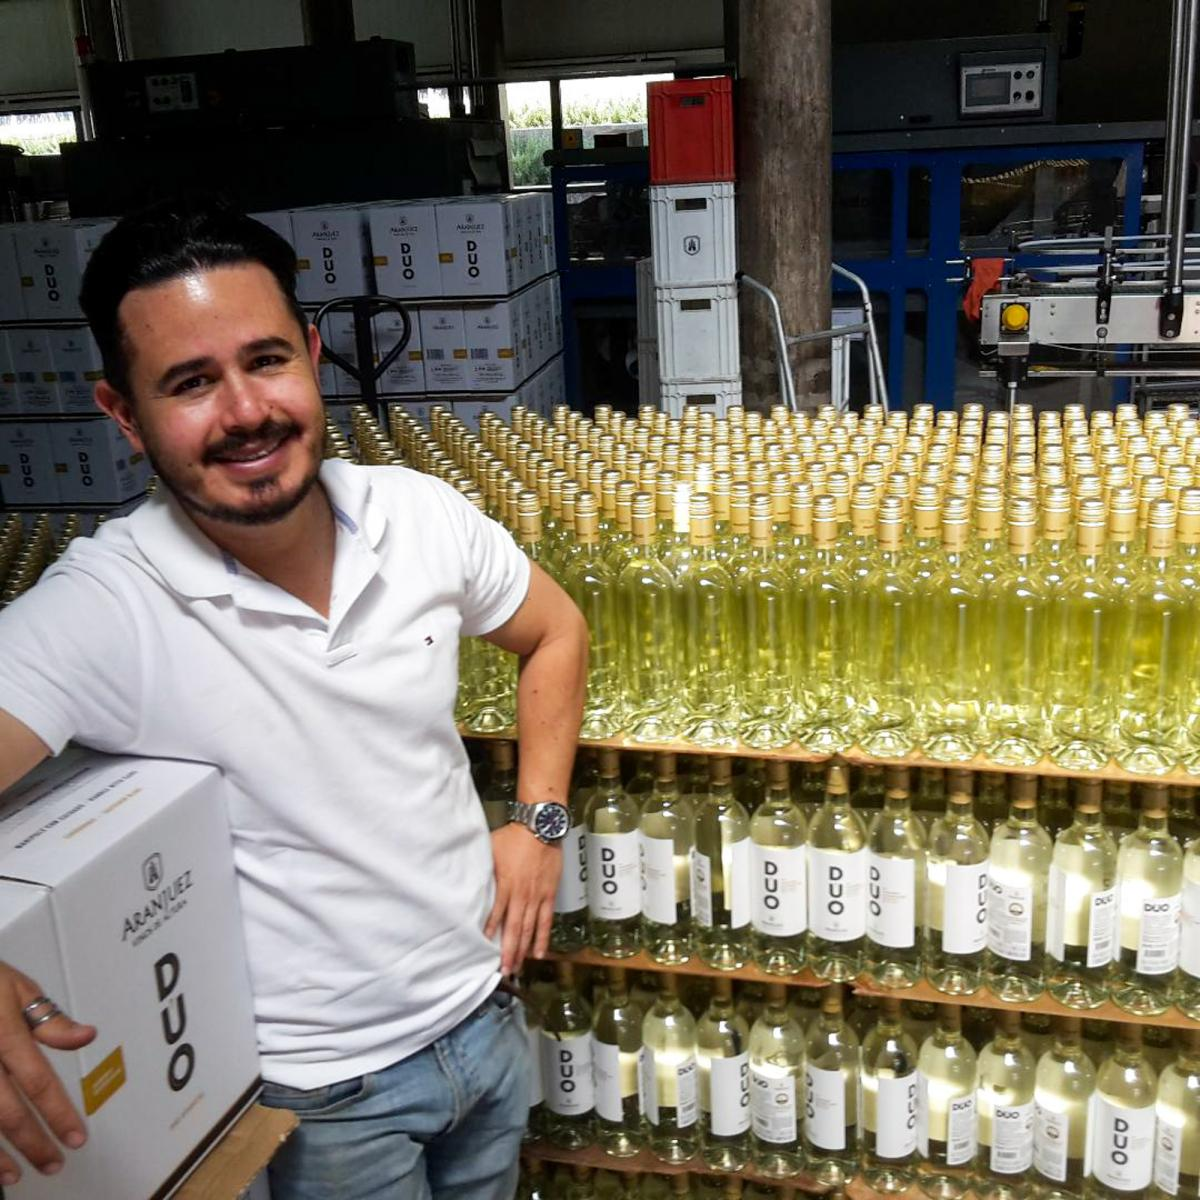 Gerardo Aguirre, export manager for the Aranjuez winery in Tarija, Bolivia, surrounded by bottles of the company's wines.